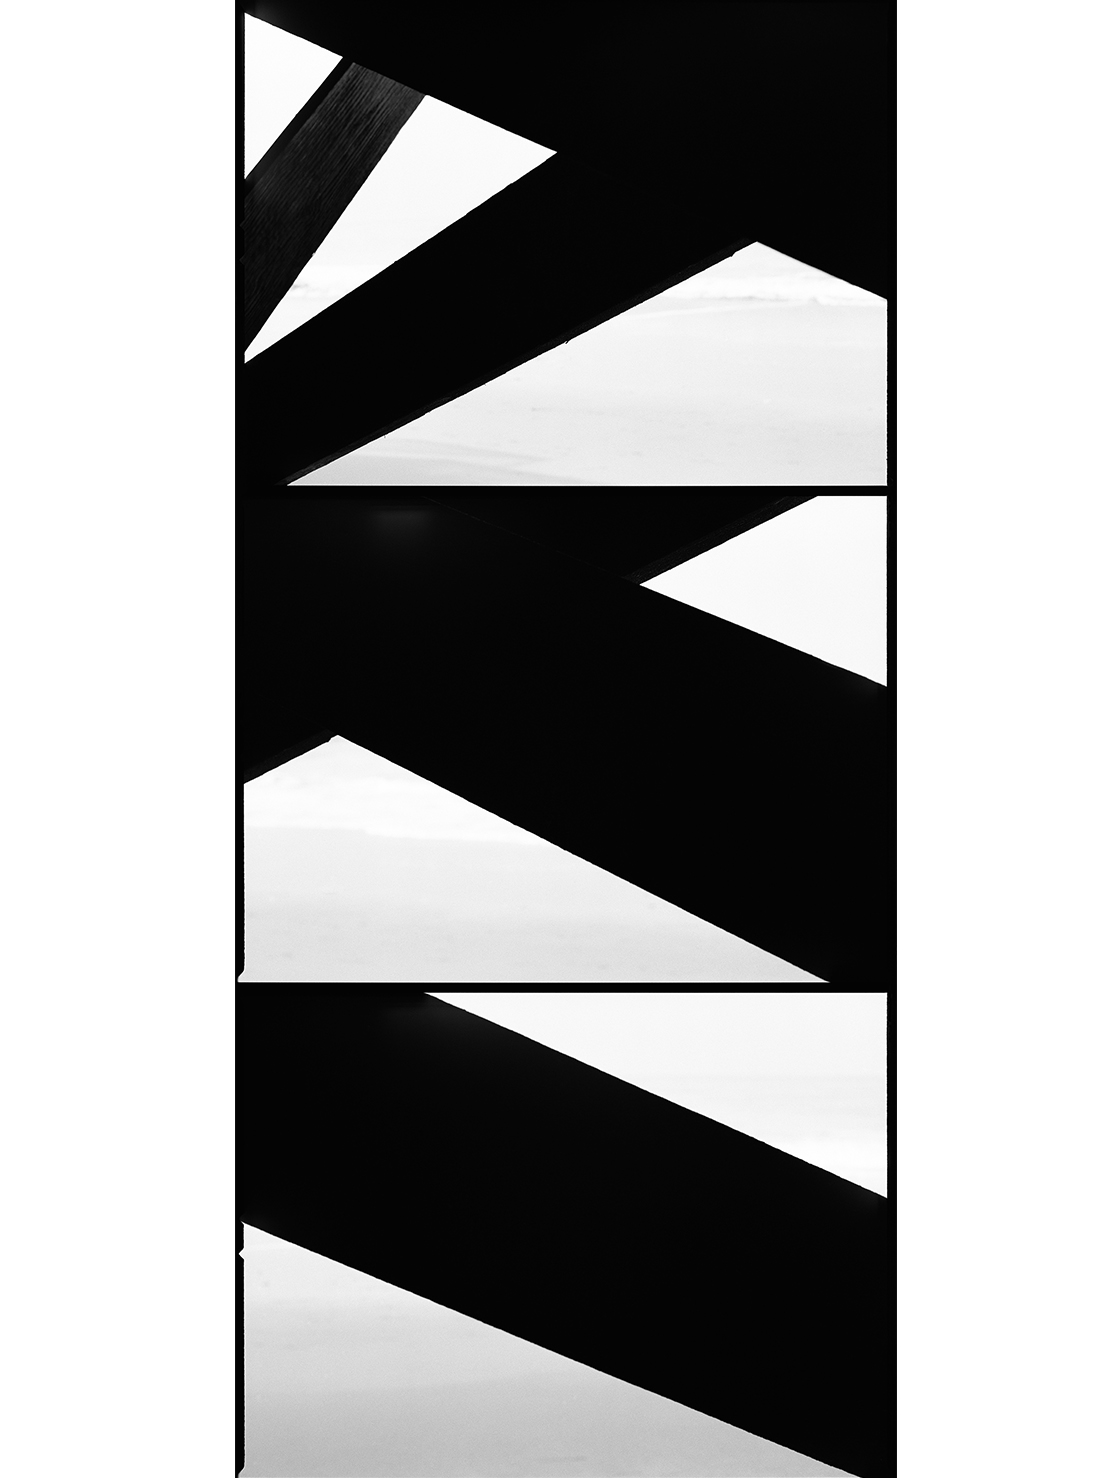 Untitled #24   (Nowhere)  , 2012/ archival pigment   print,   48 x 21 13/16  inches  ,  edition of 3 plus 2 AP